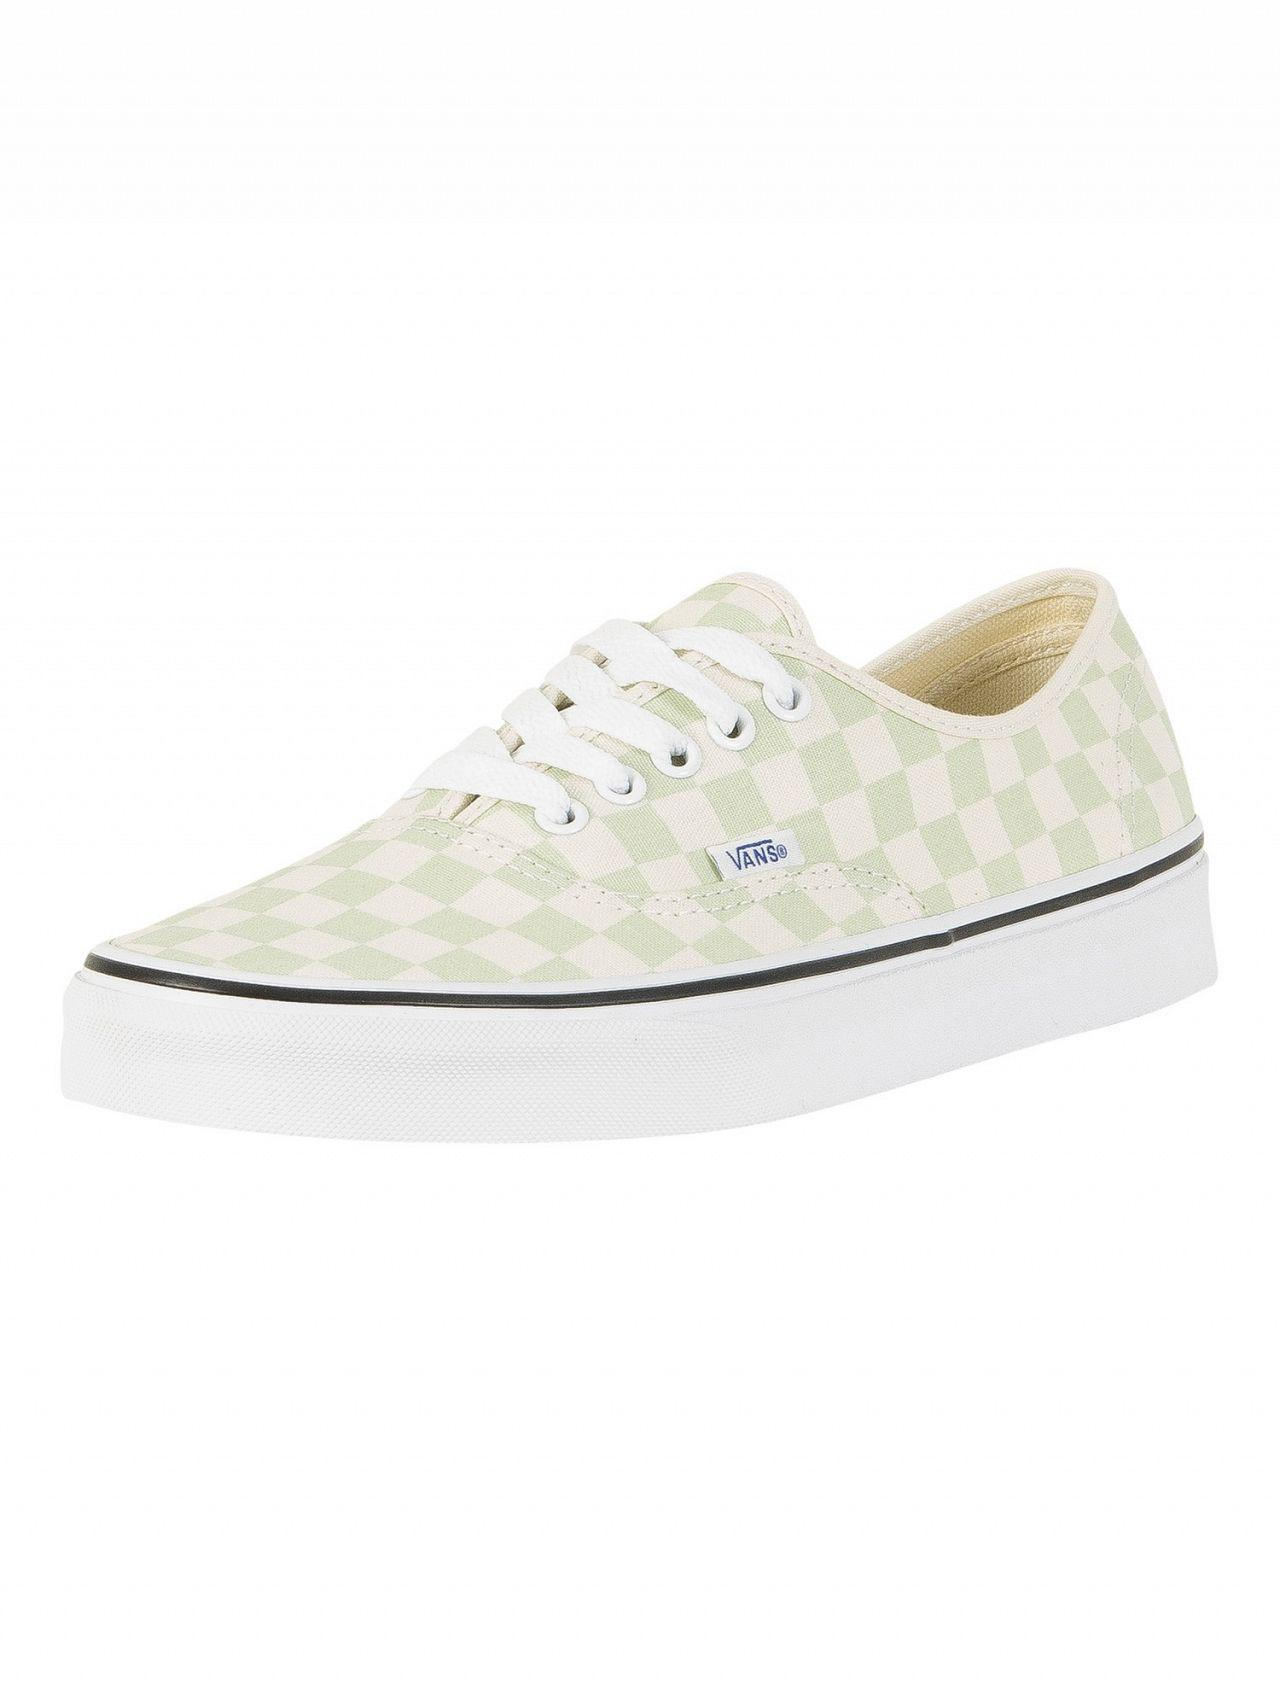 Lyst - Vans Ambrosia Authentic Checkerboard Trainers in White for Men 49f06c680